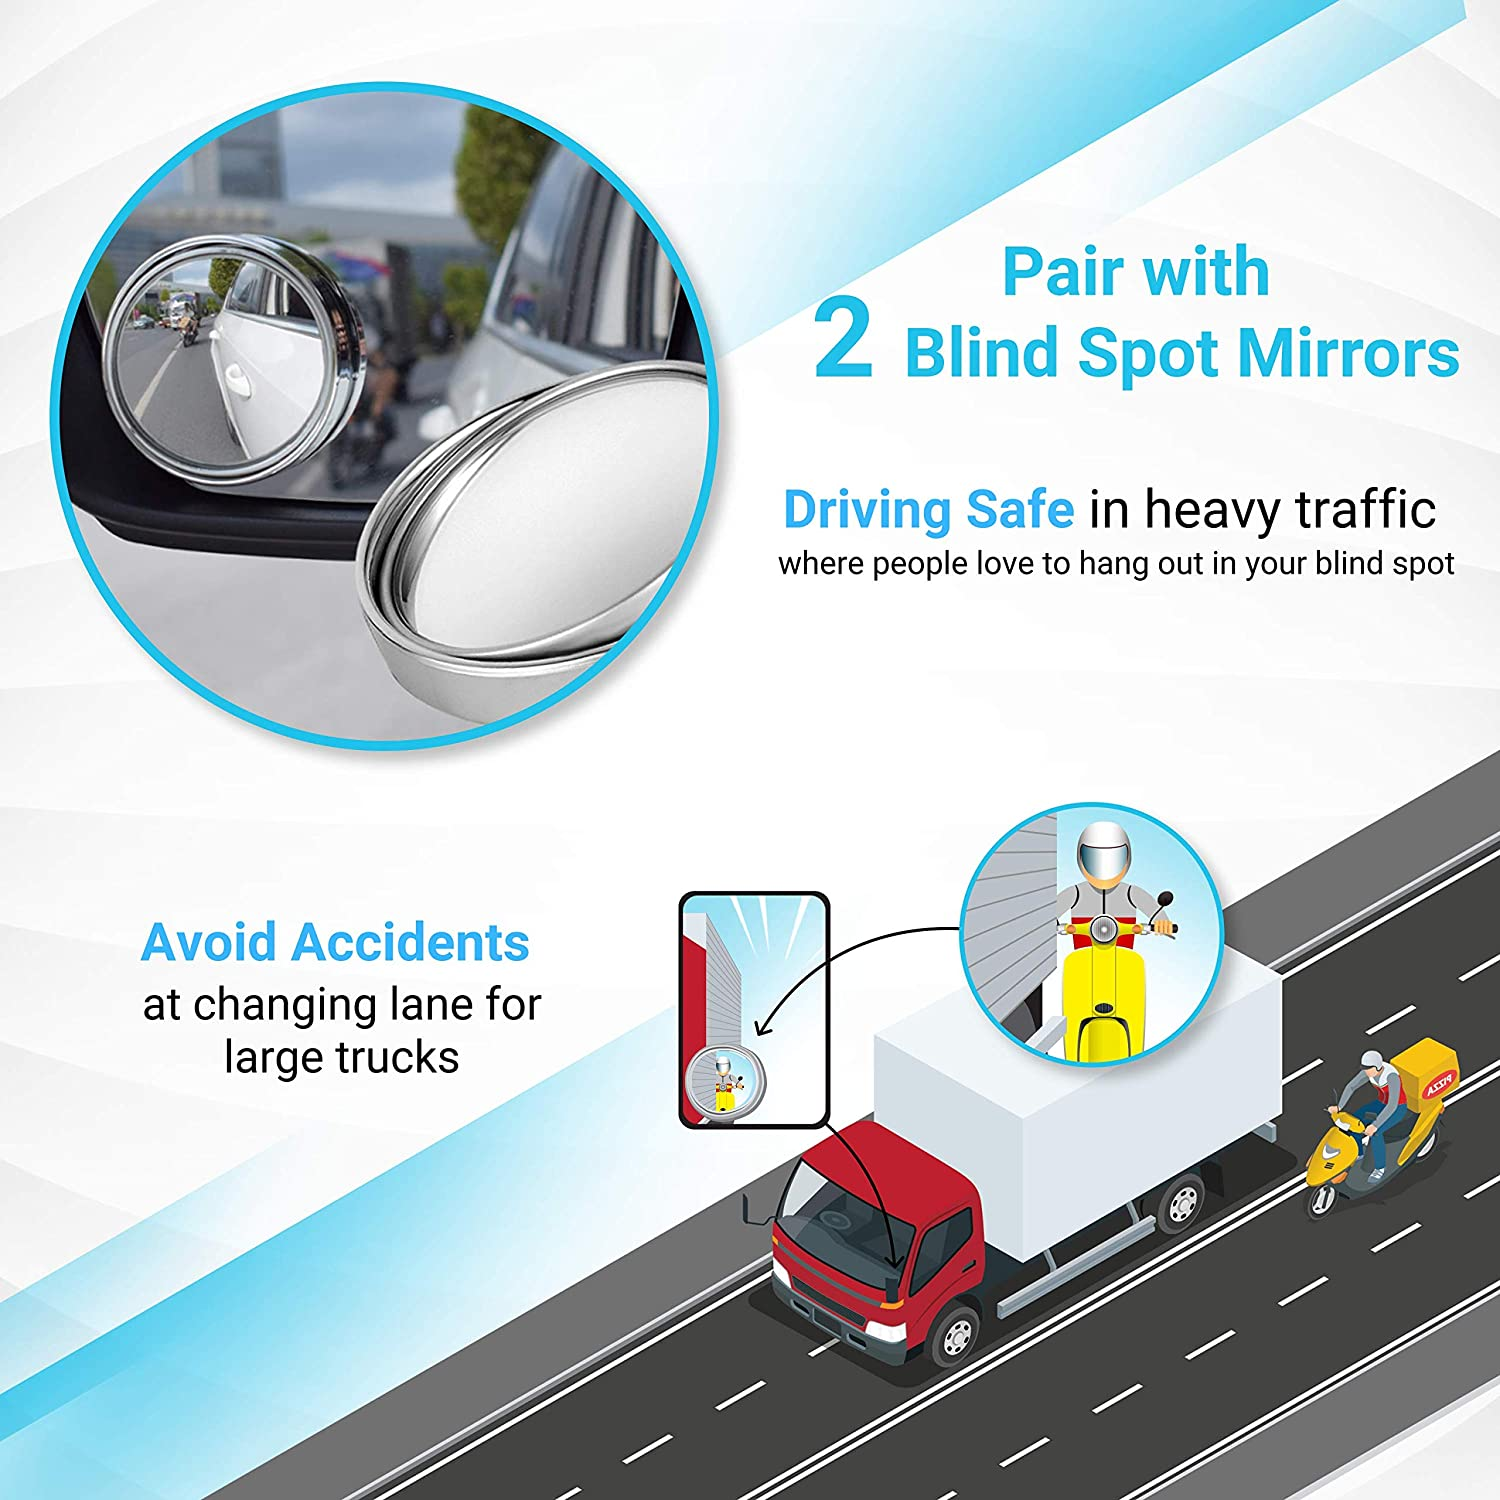 Universal Interior Clip On Rearview Mirror Convex Wide Angle Rear View Mirror Wide Rearview Mirror for Car Truck SUV 30 cm x 8 cm, 11.8 x 3.15